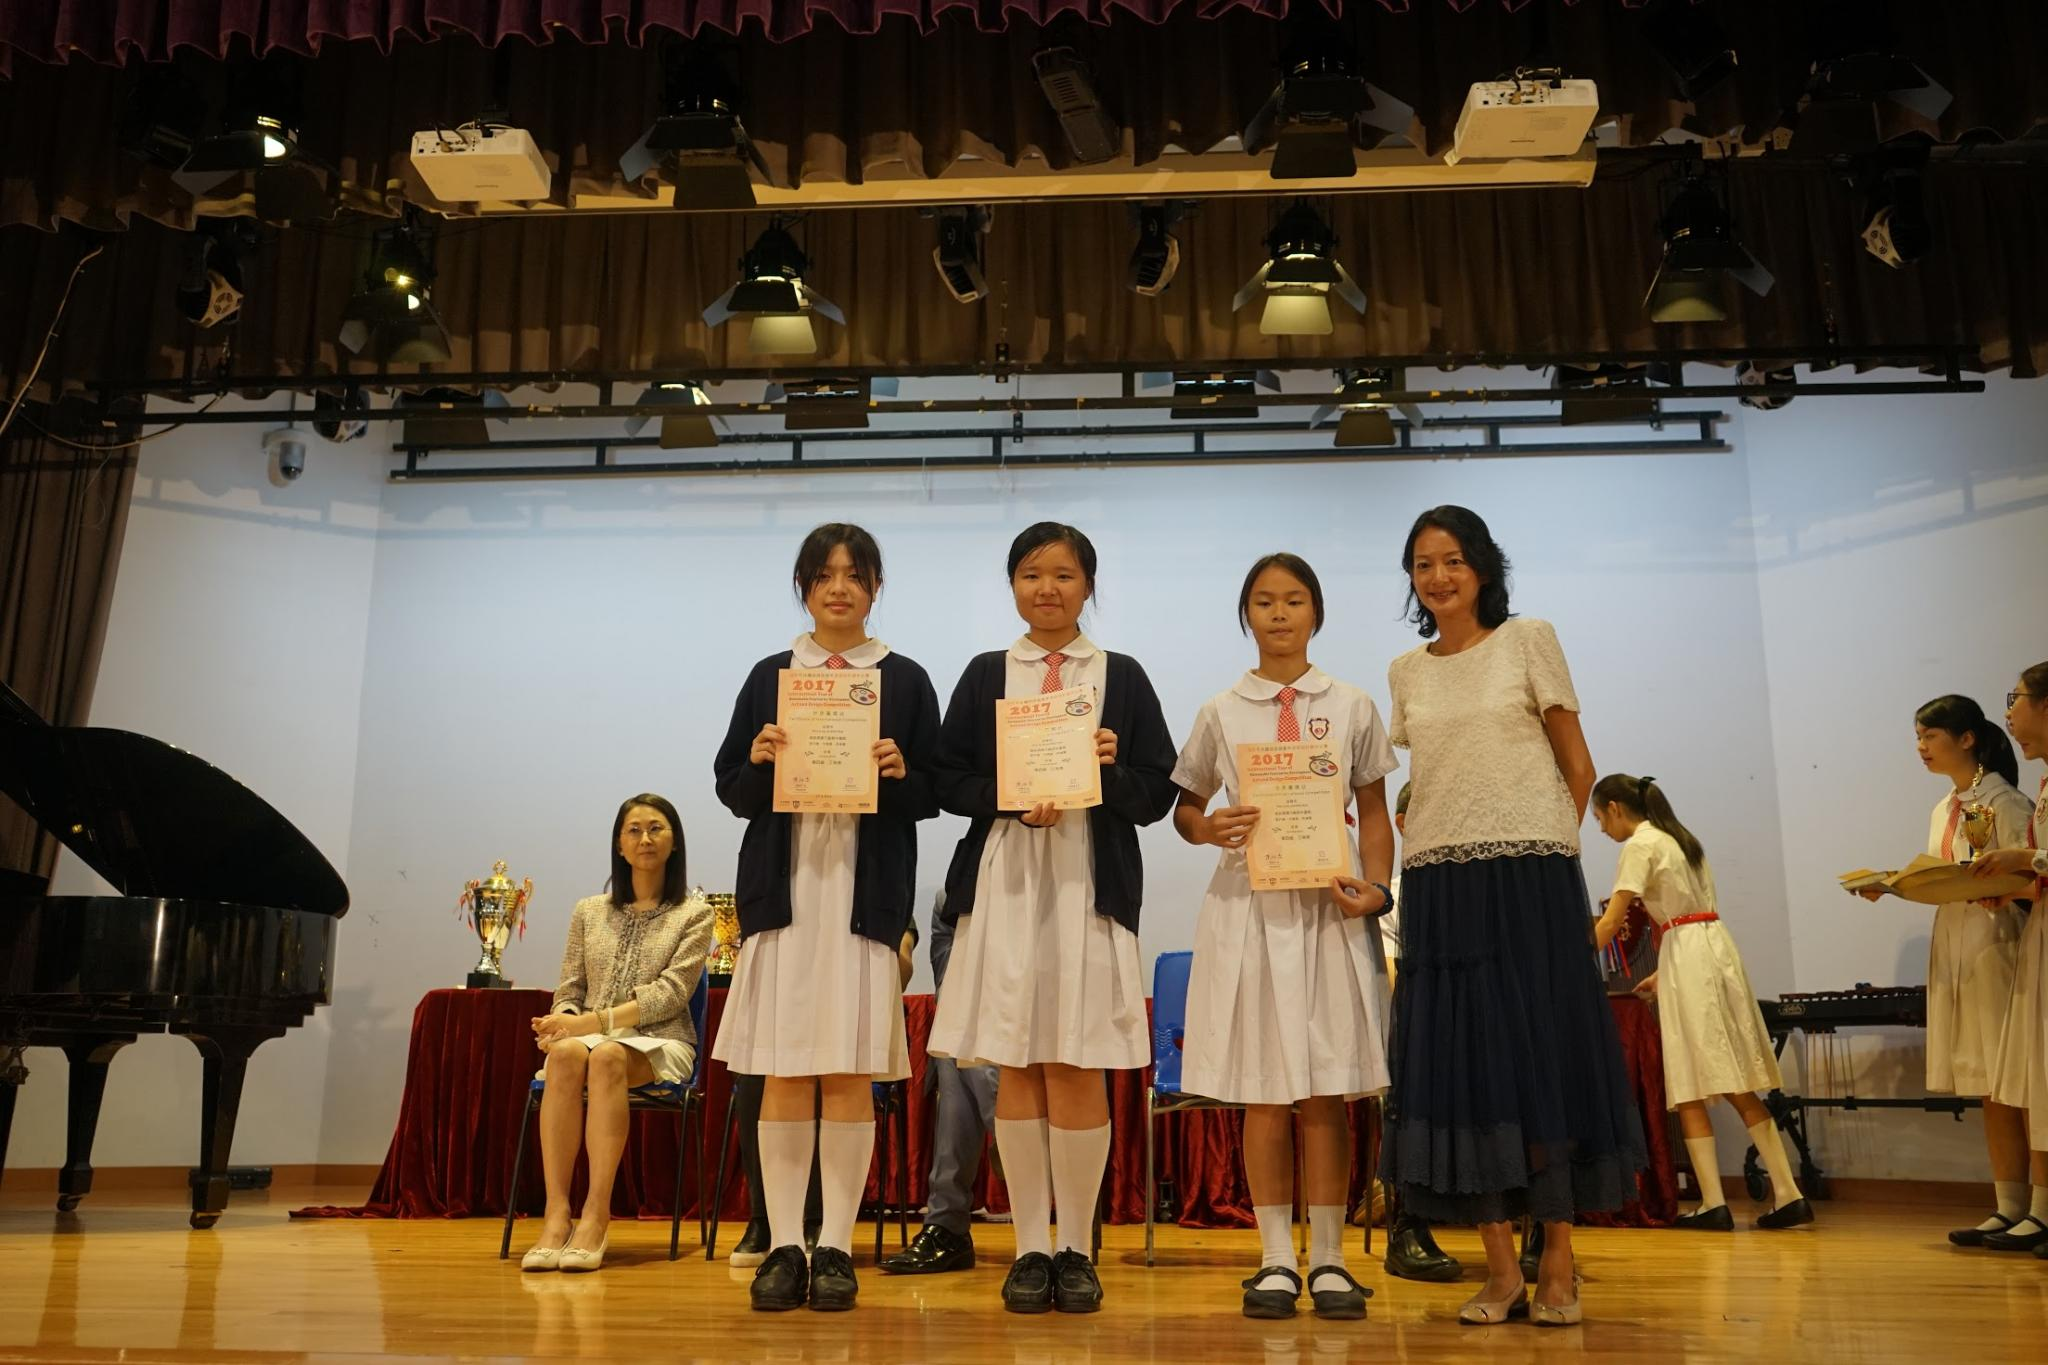 1A Cheong Hau Nam, 1A Fong Yuen Chi, 1B Hui Cheuk Yin received the prize during the closing ceremony.